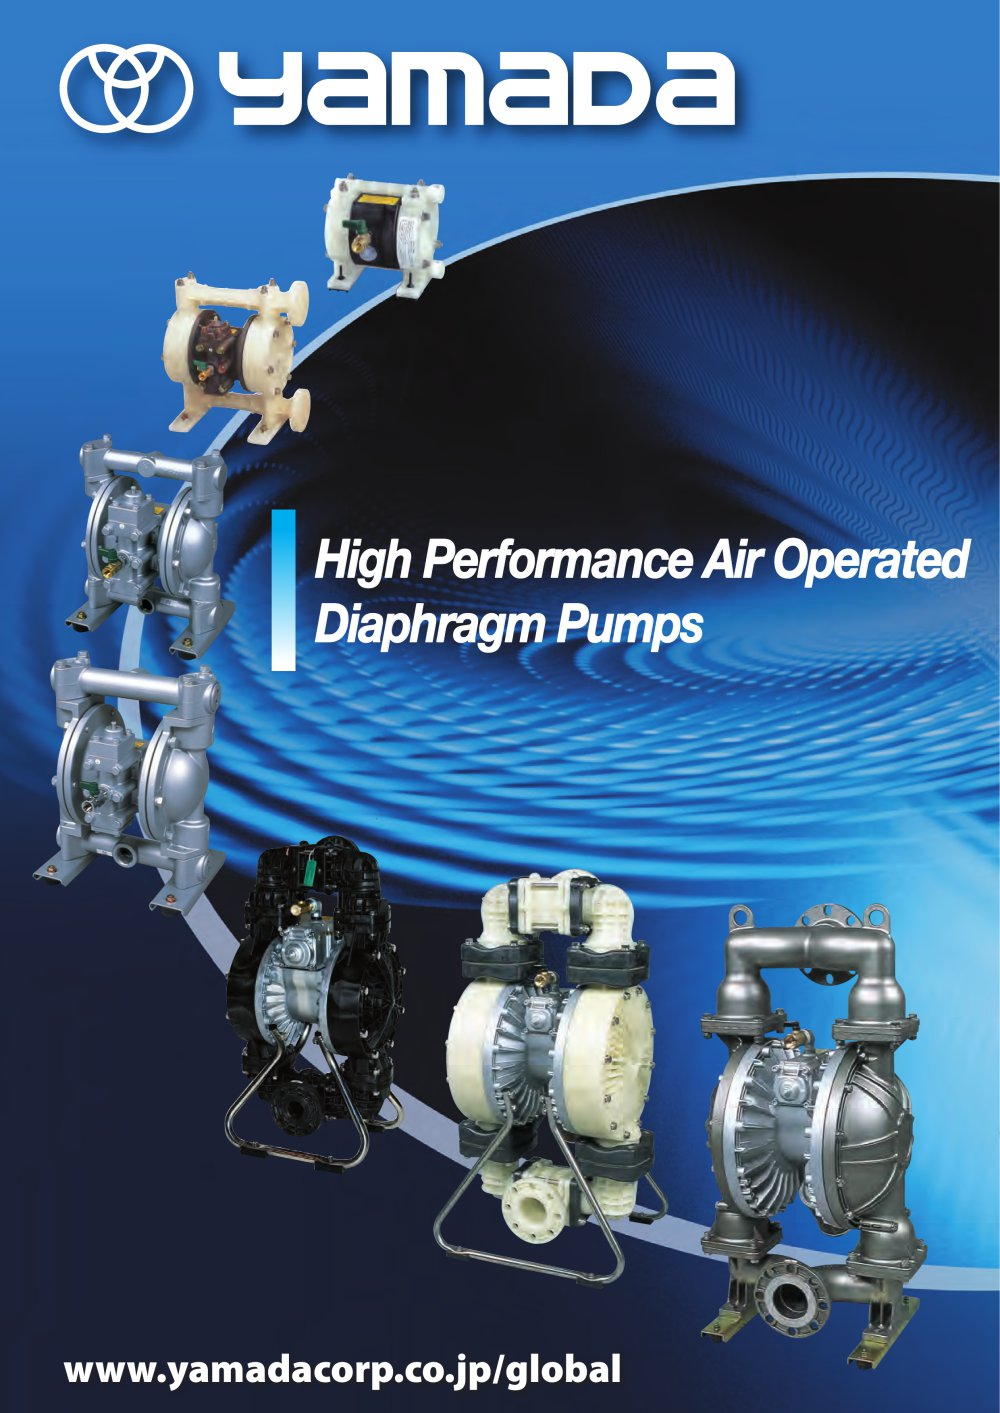 High performance air operated diaphragm pumps yamada corporation high performance air operated diaphragm pumps 1 32 pages ccuart Images